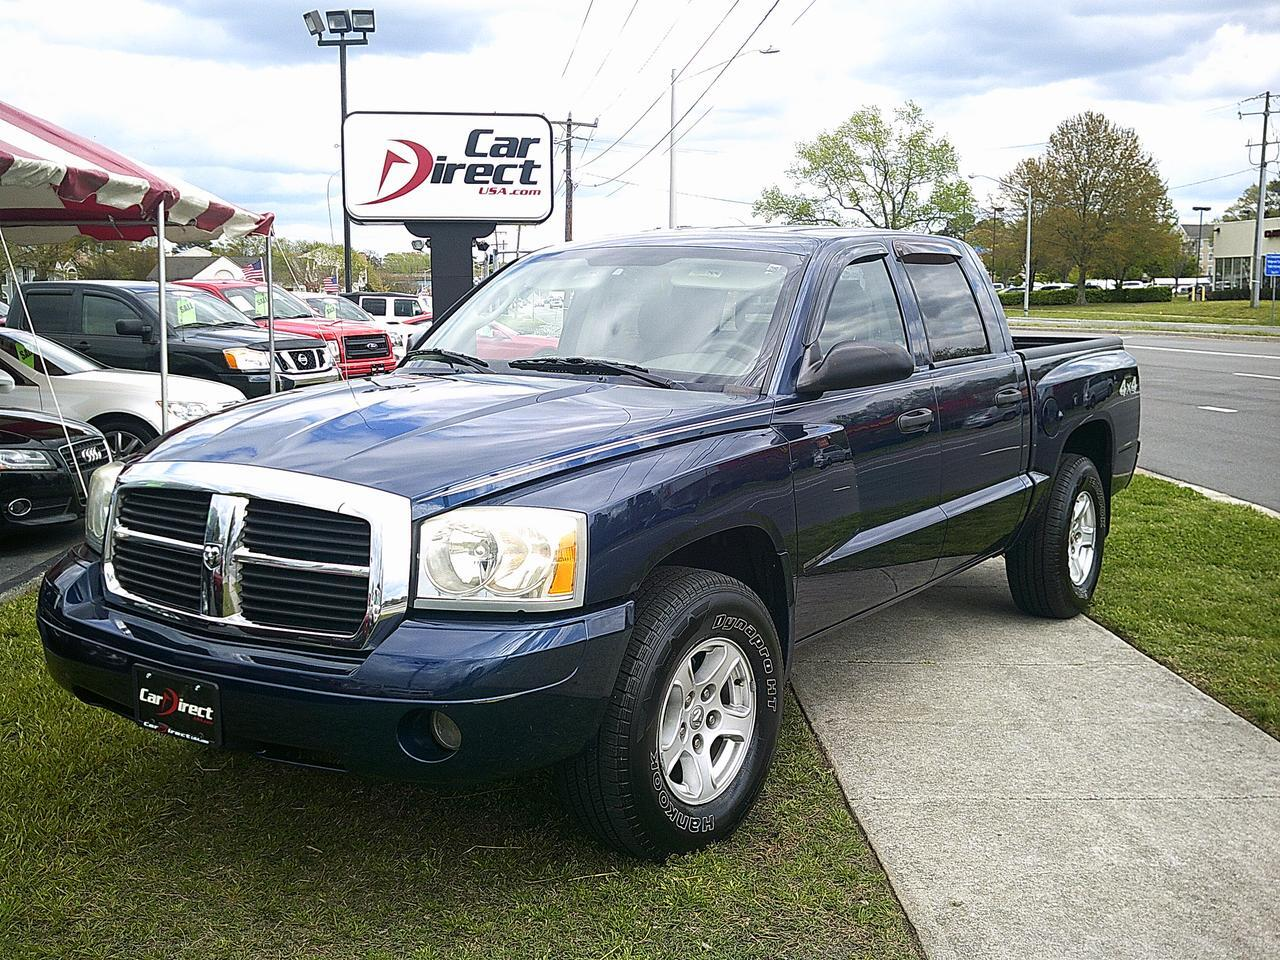 2006 dodge dakota quad cab slt 4x4 carfax certified 4 7l. Black Bedroom Furniture Sets. Home Design Ideas